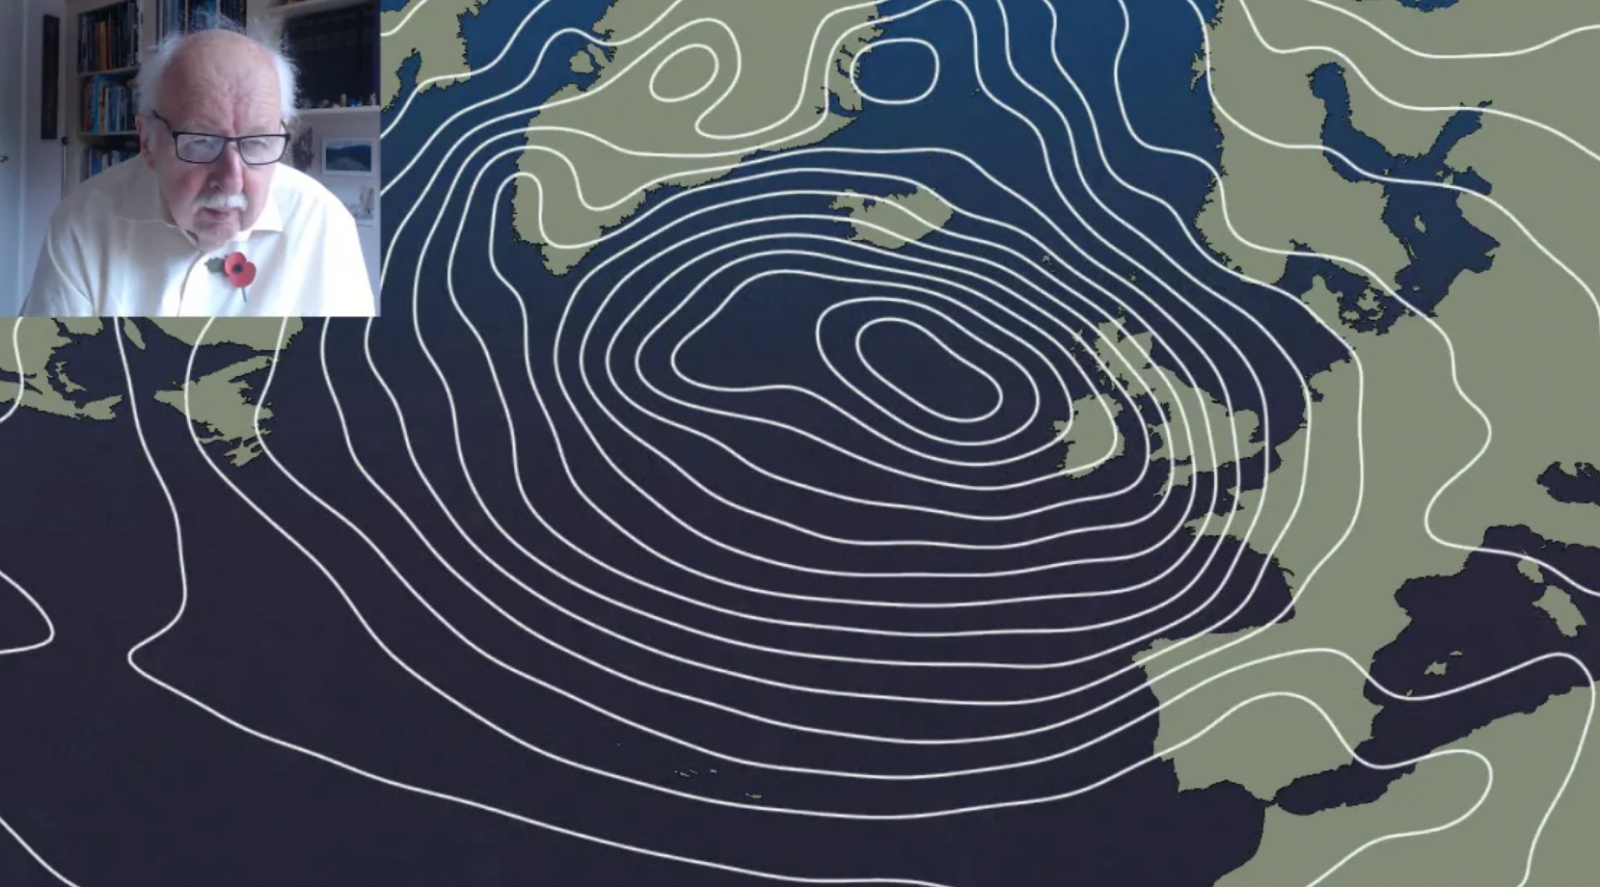 Michael Fish: A week of two halves coming up